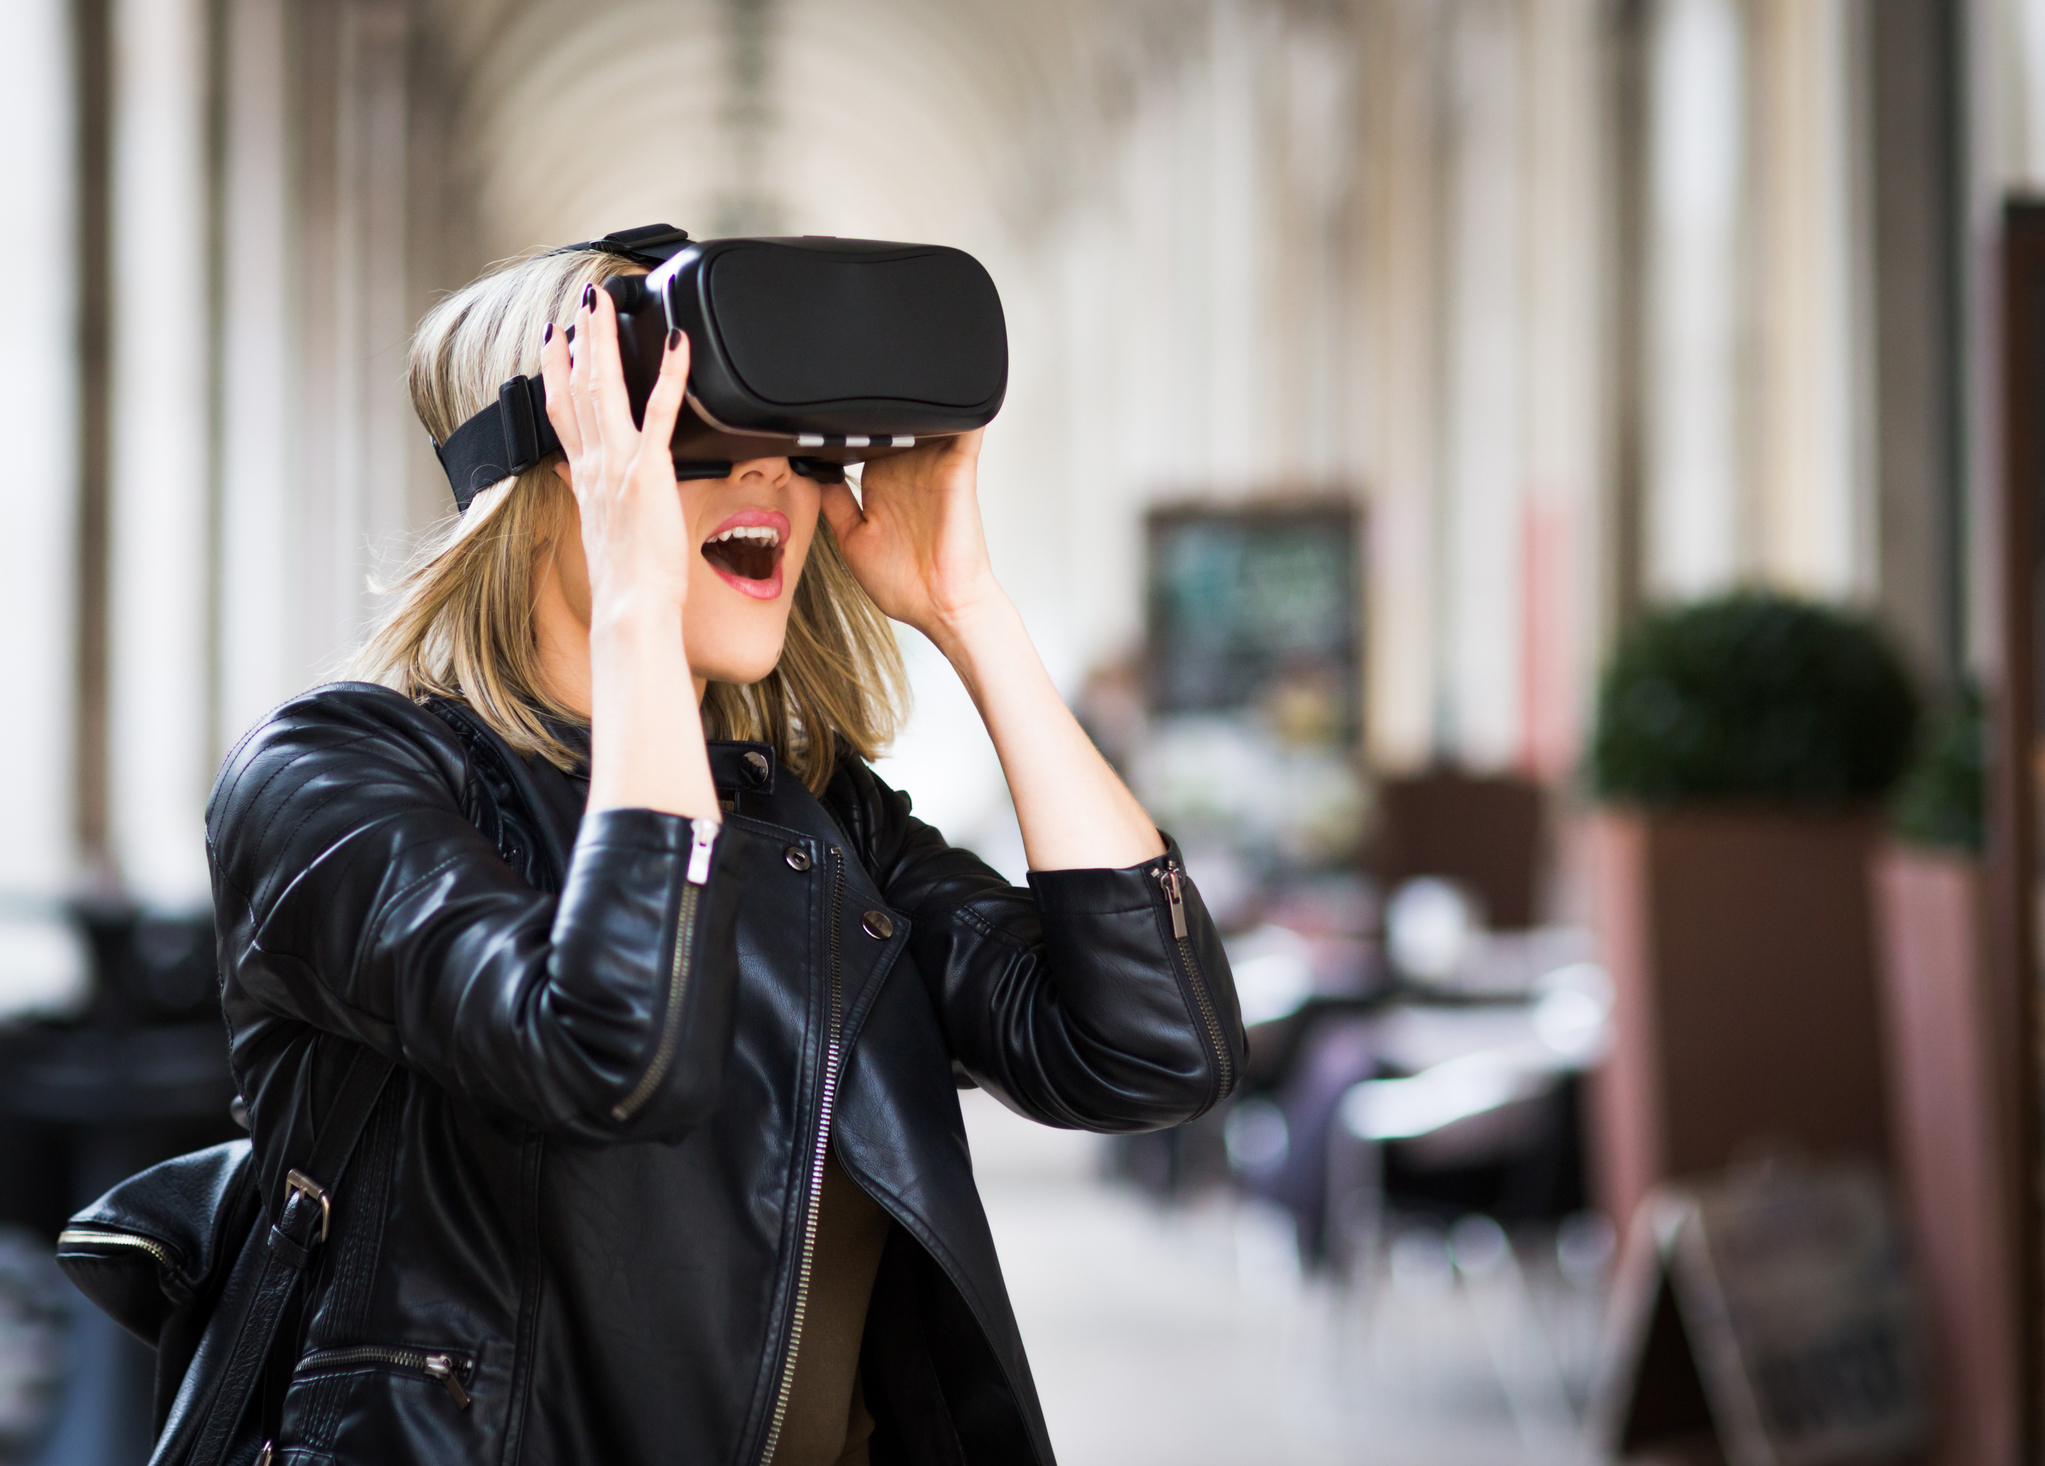 Image: iStock - Women testing Virtual Reality simulator on the street